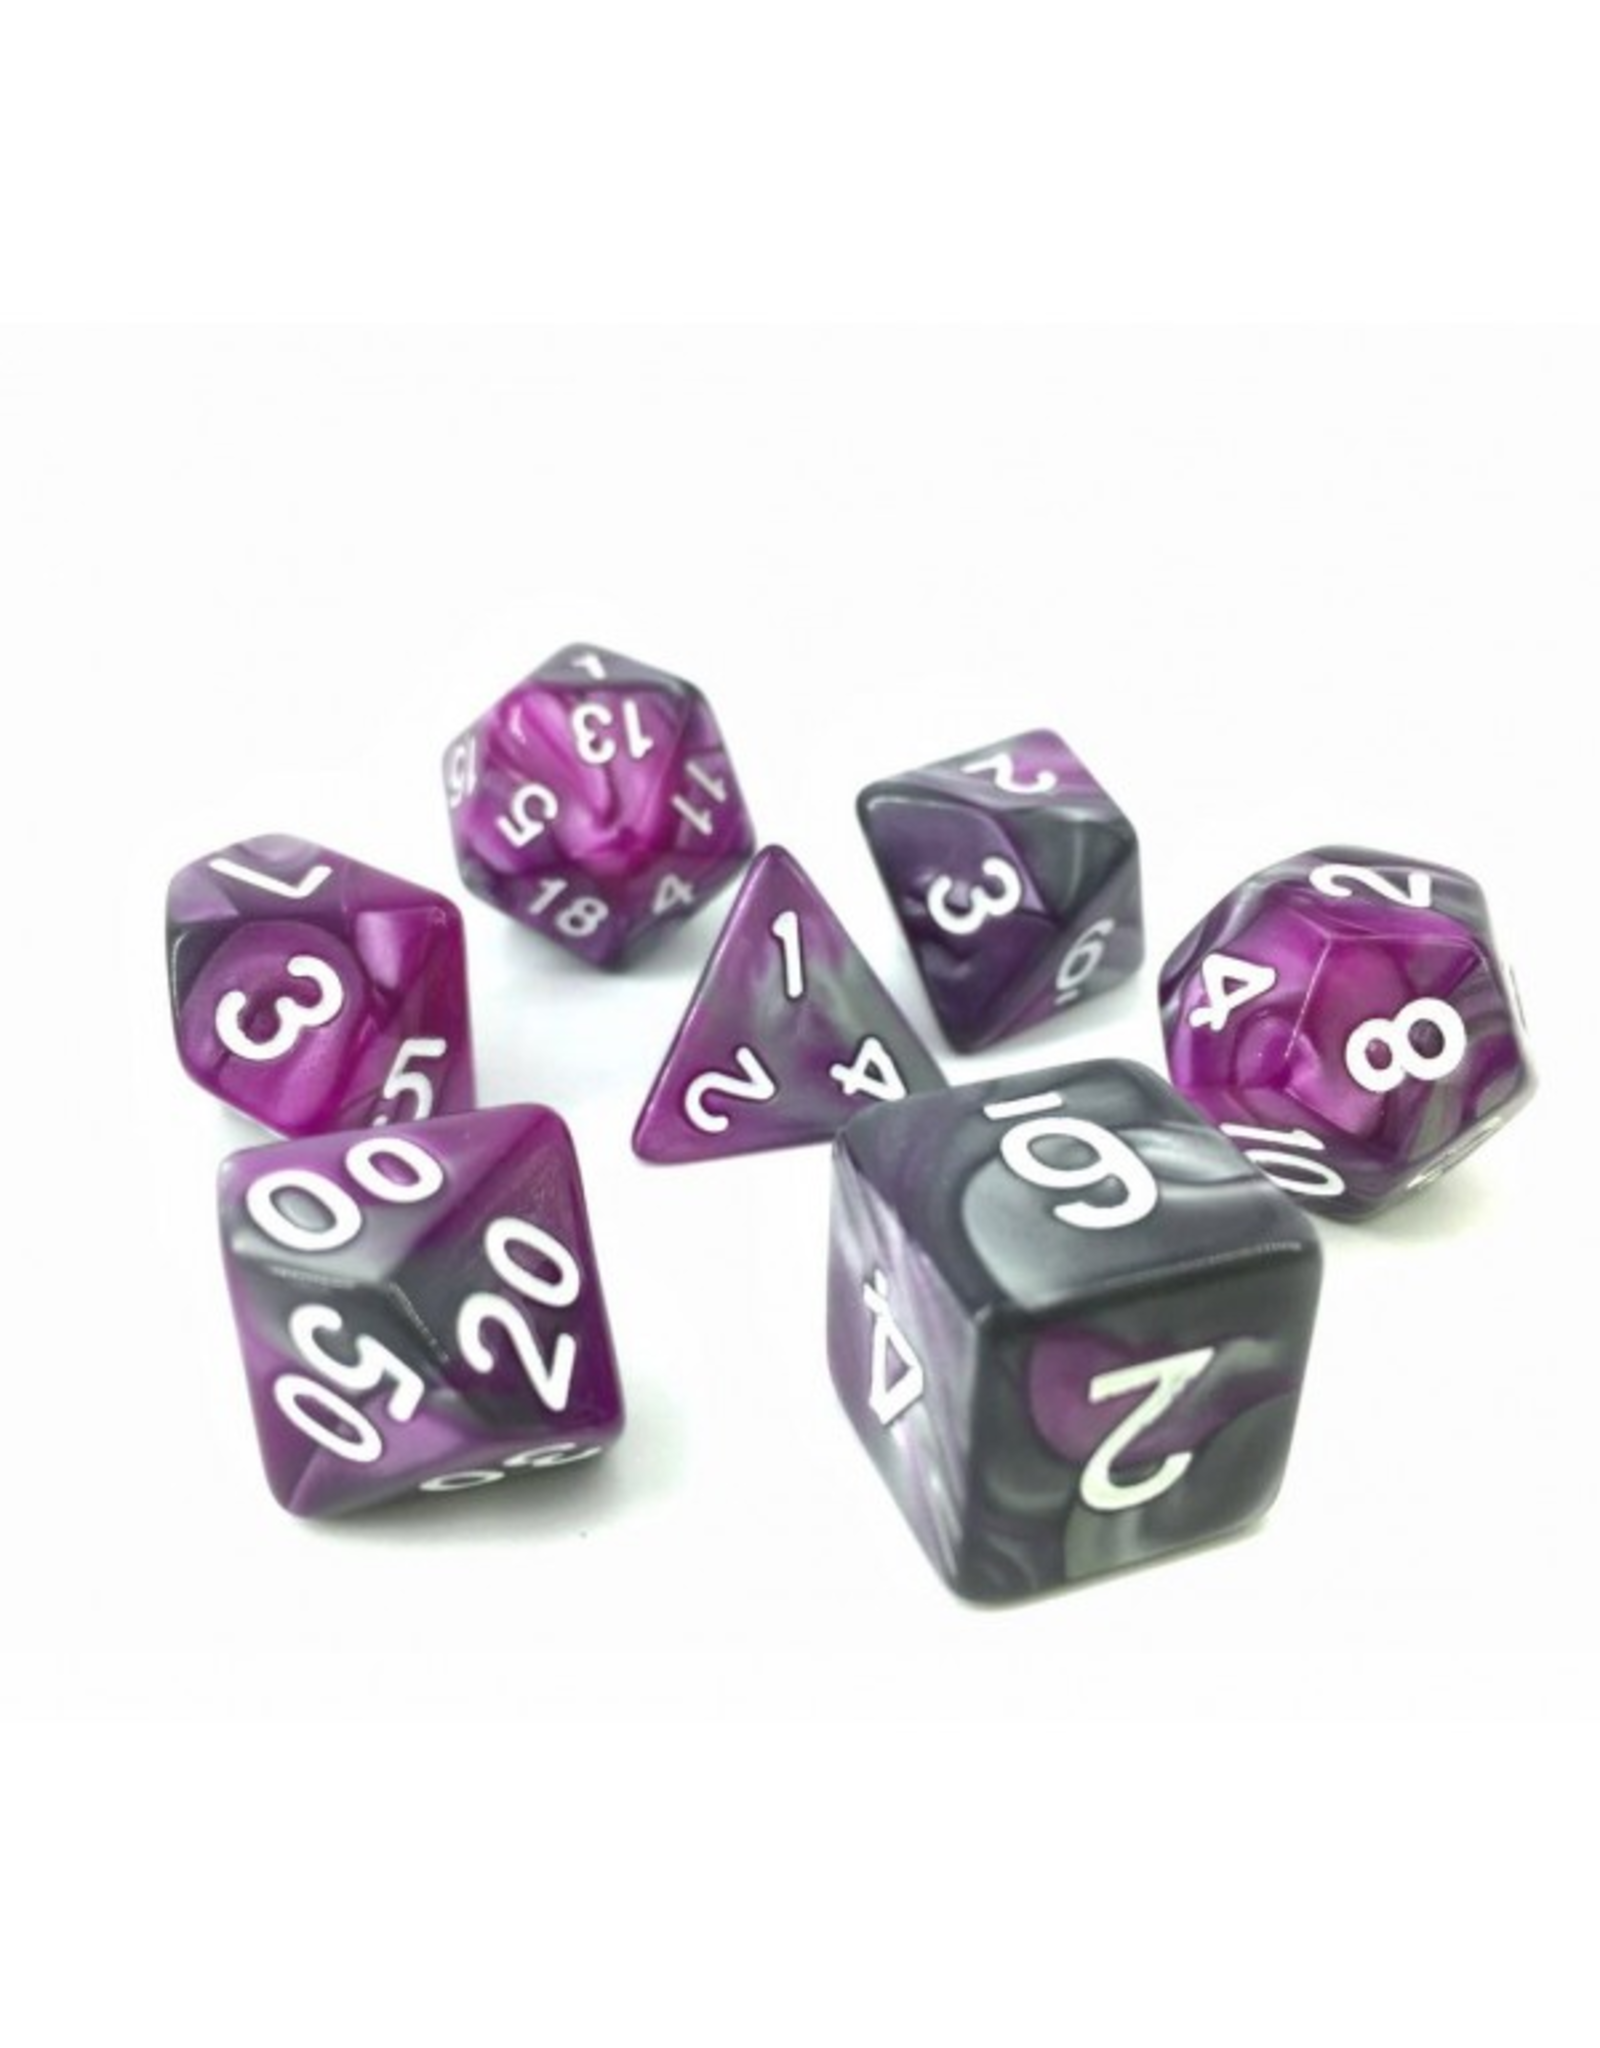 HD Dice Dice: 7-Set Blend Silver and Purple with White Numbers (HD)